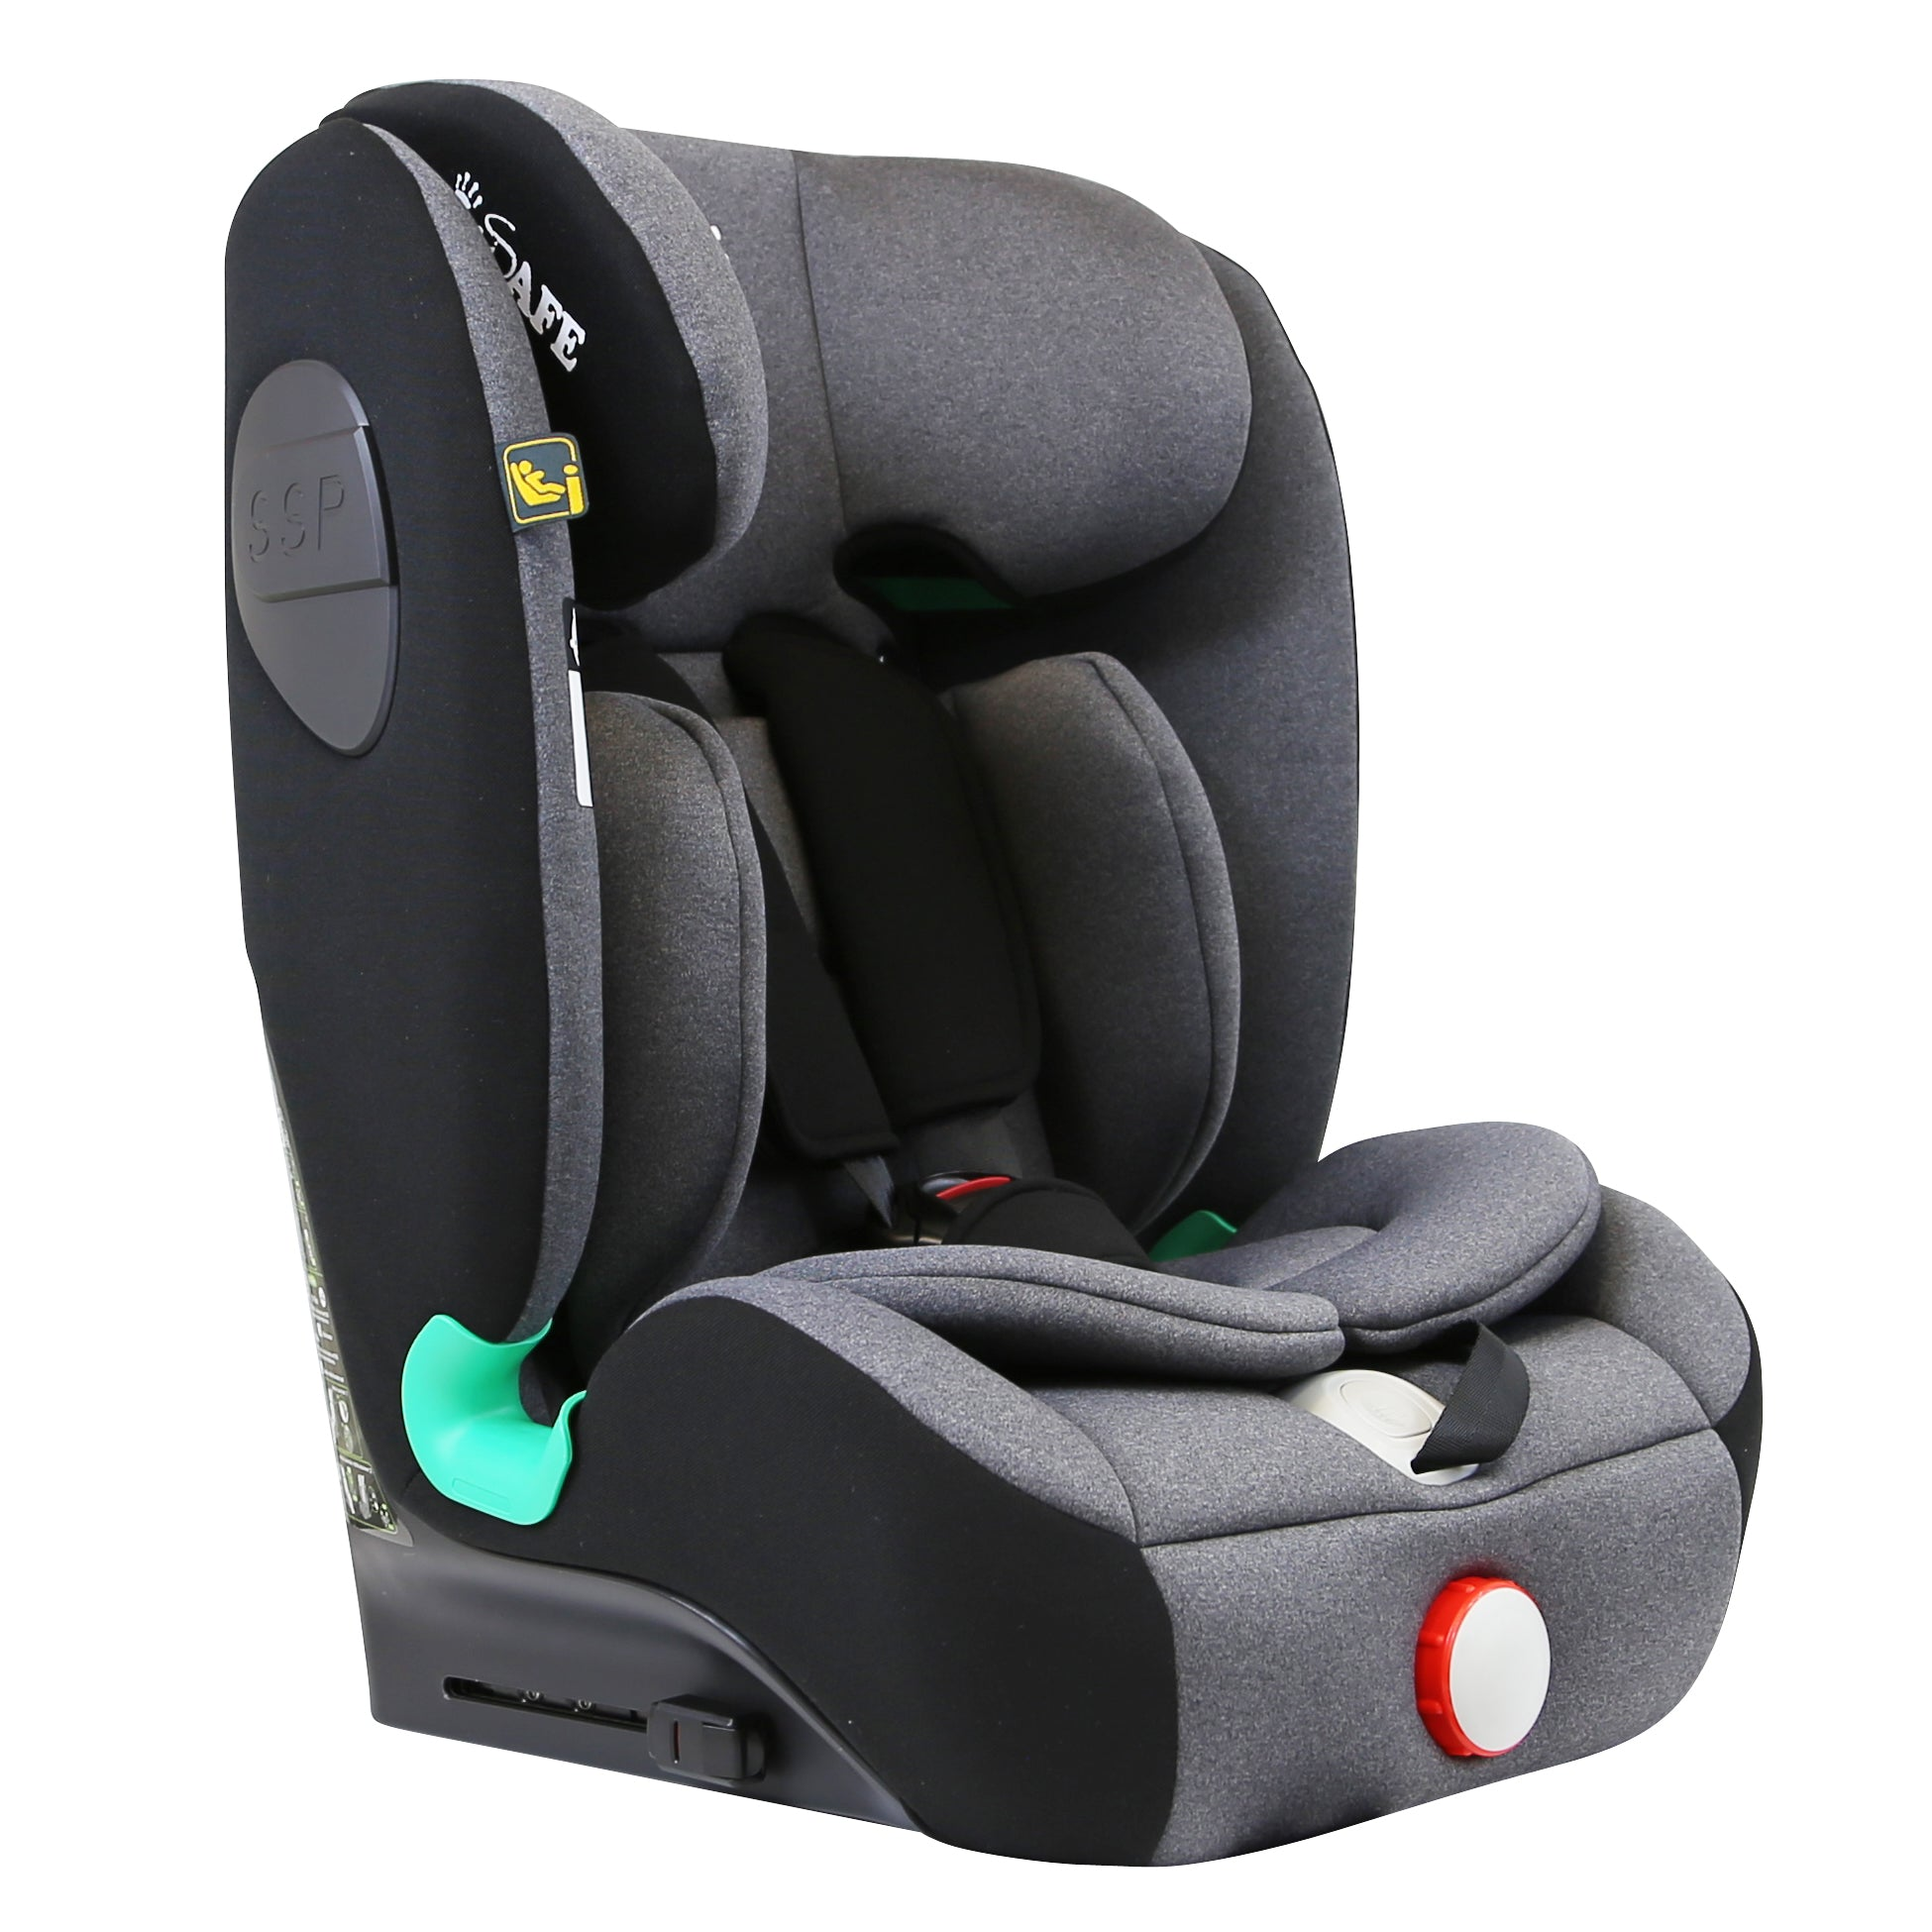 iSafe iSiZE Isofix Baby Car Seat Group 1/2/3 (Black / Grey) ECE R129/03 (Space Saver)